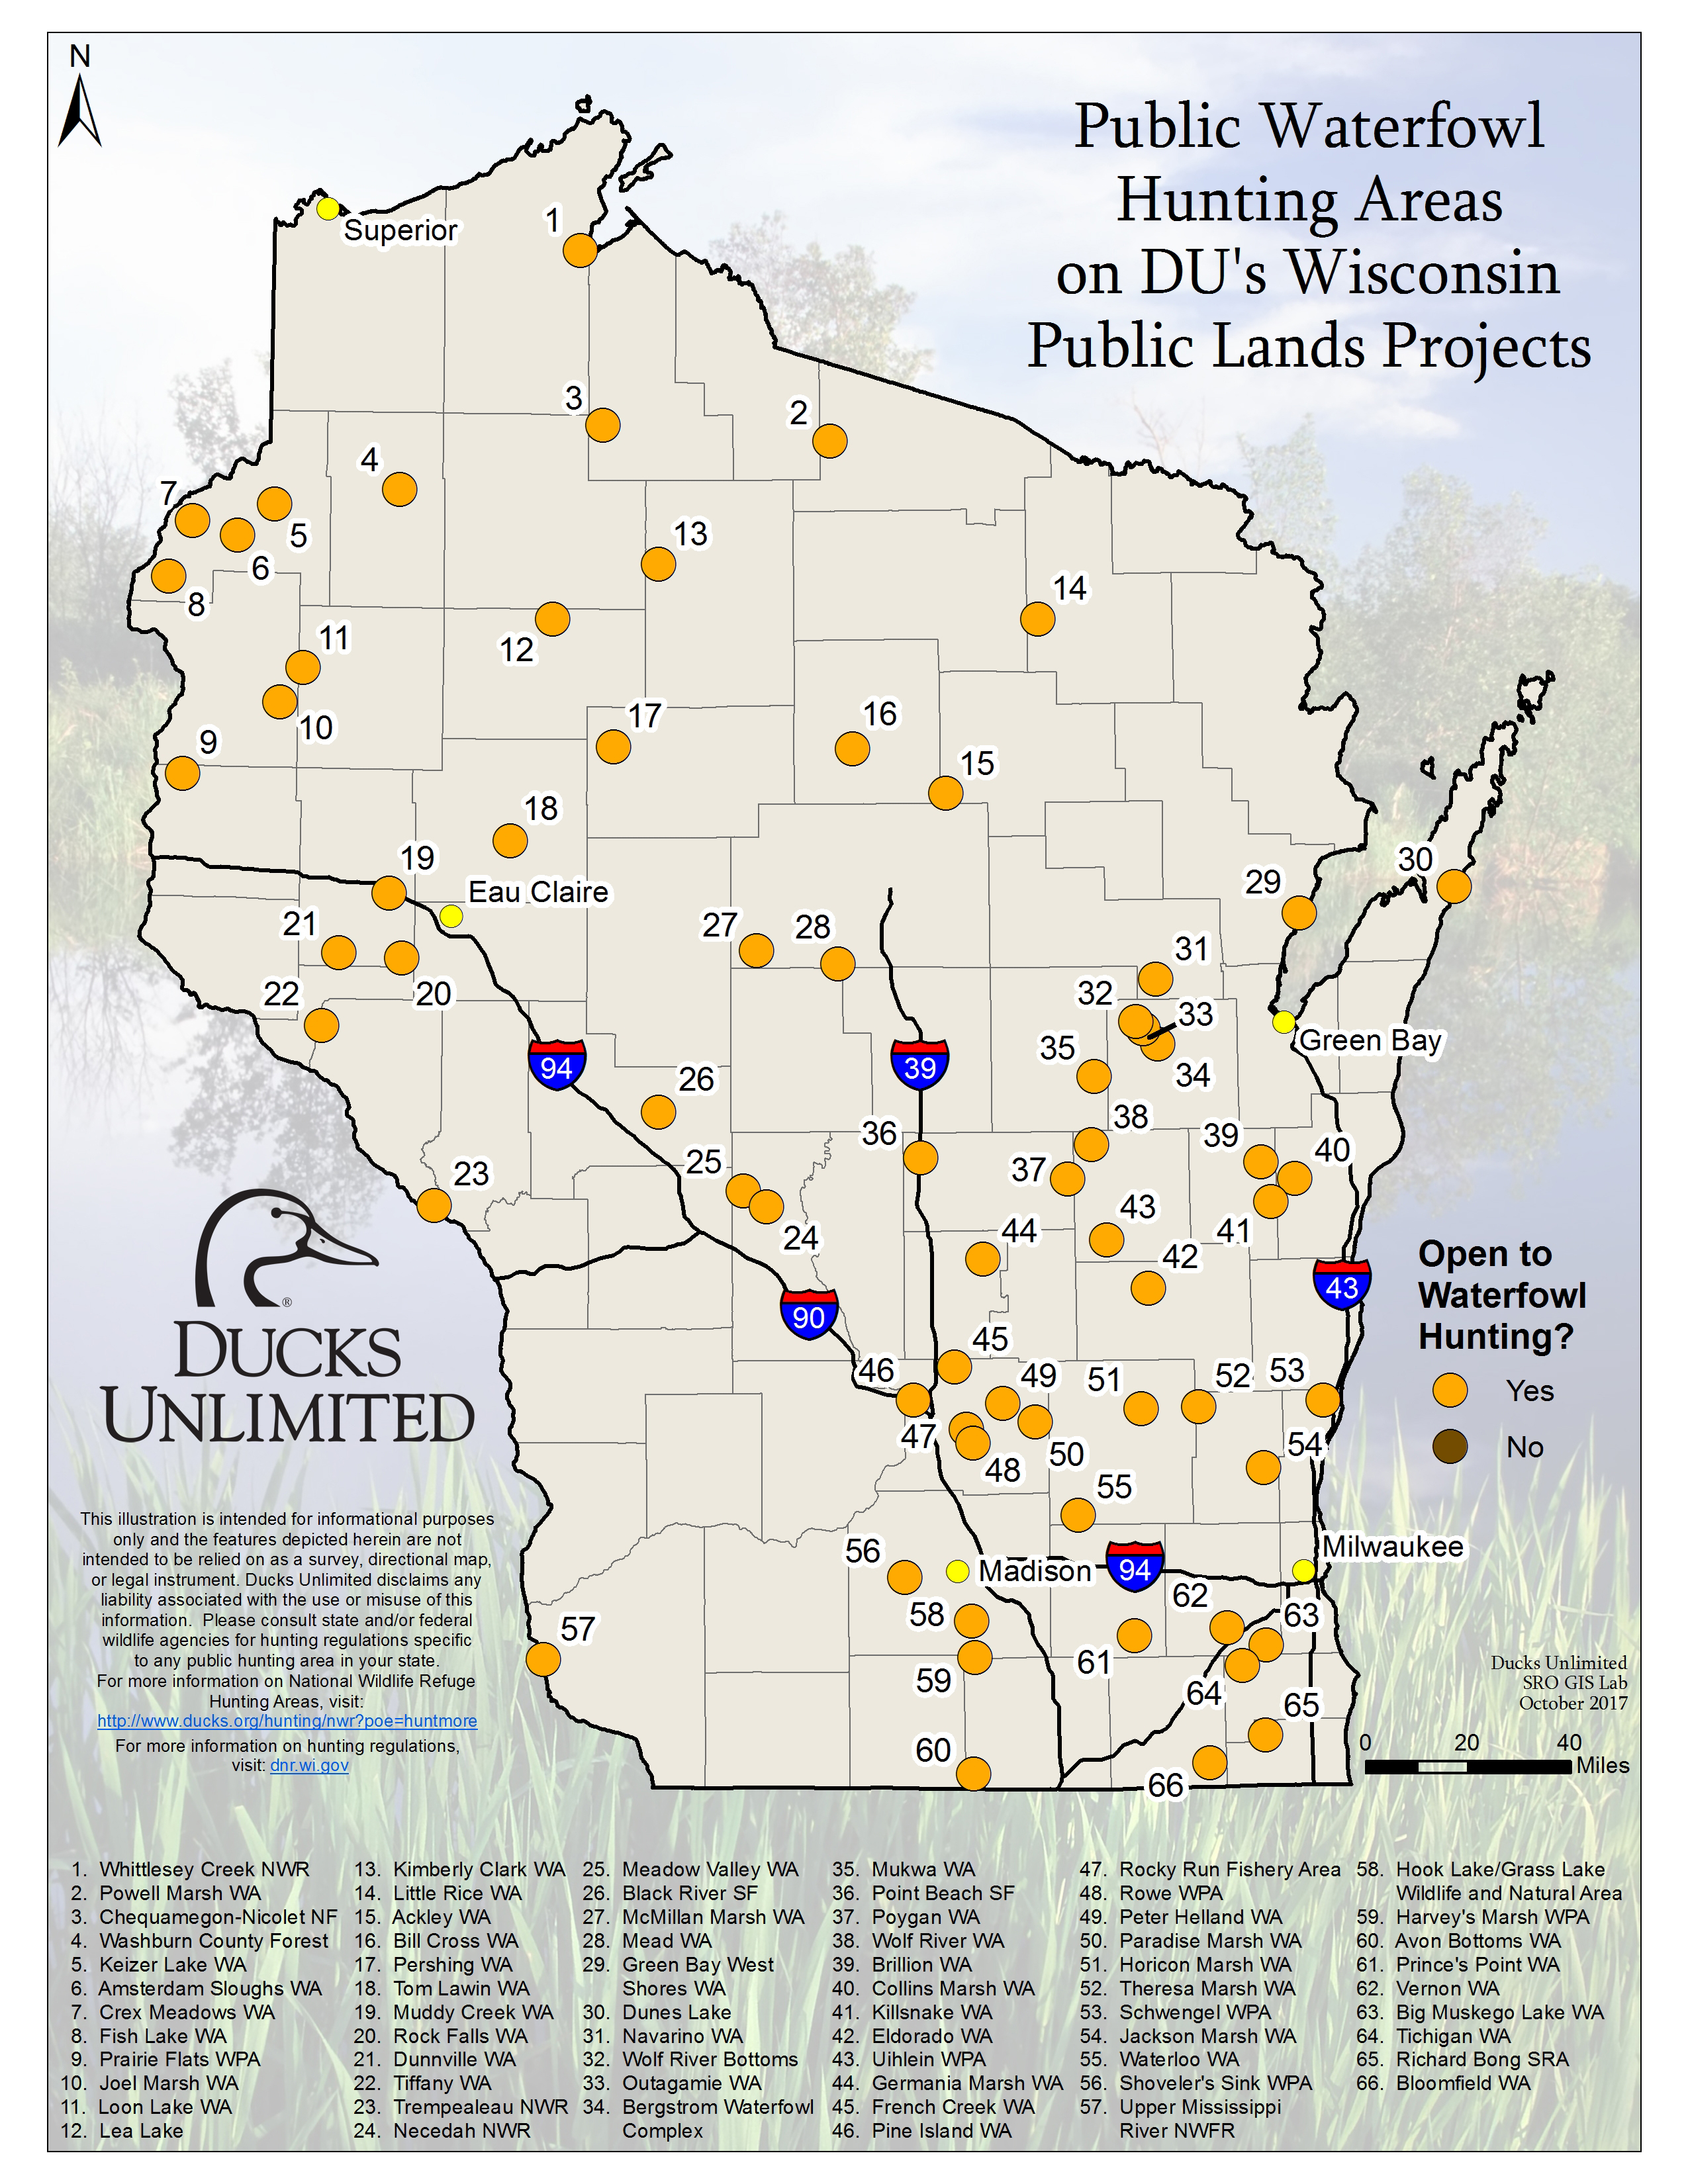 iowa public hunting map Public Waterfowl Hunting Areas On Du Public Lands Projects iowa public hunting map